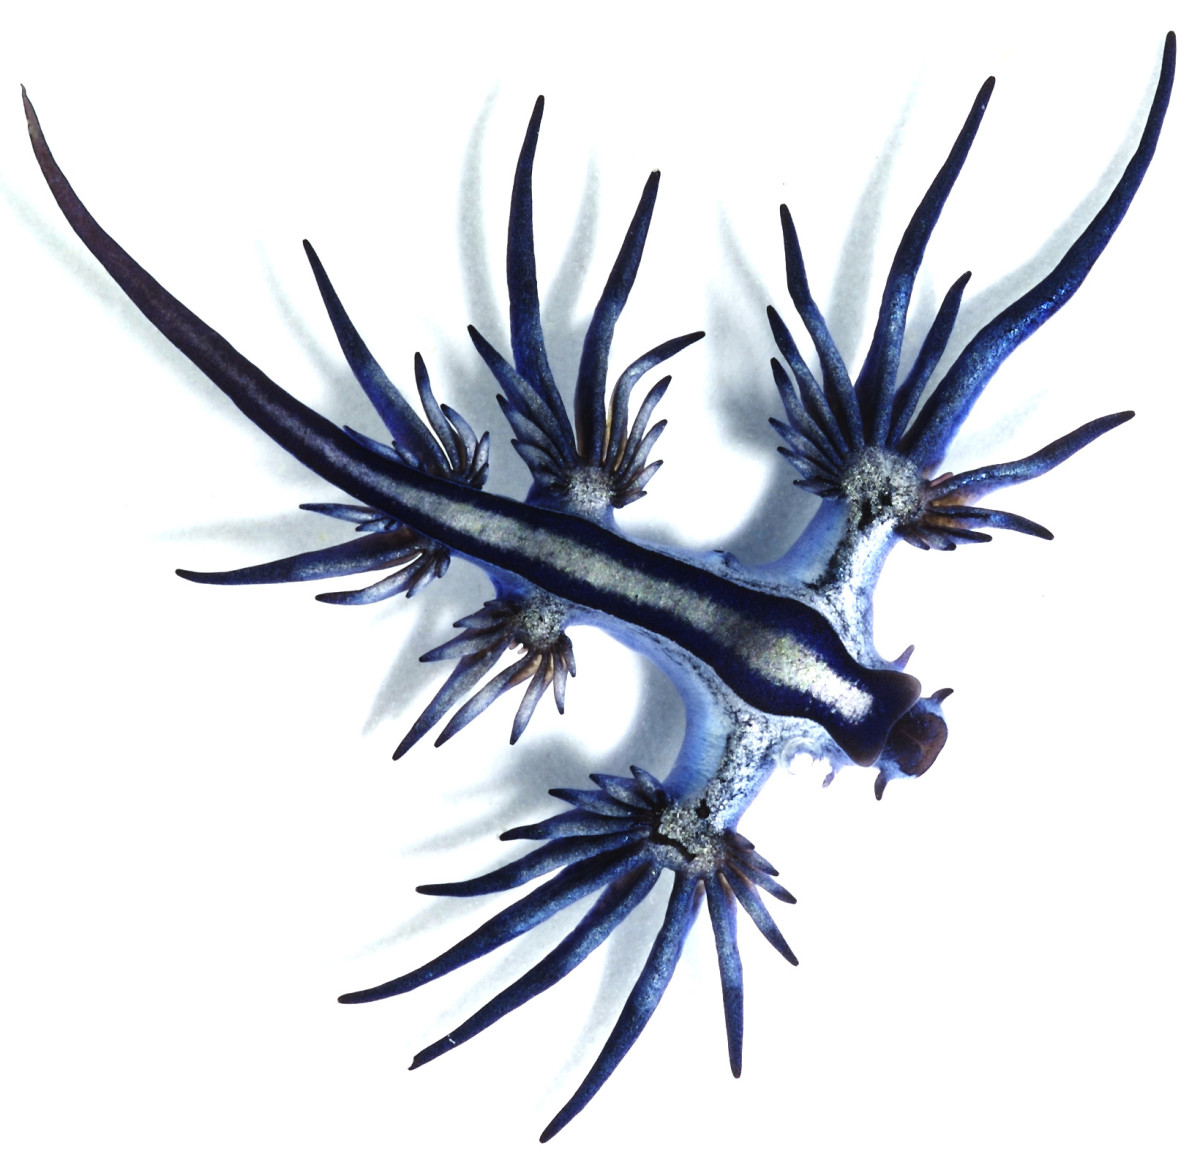 Glaucus atlanticus, the blue dragon is a member of the nudibranch family..